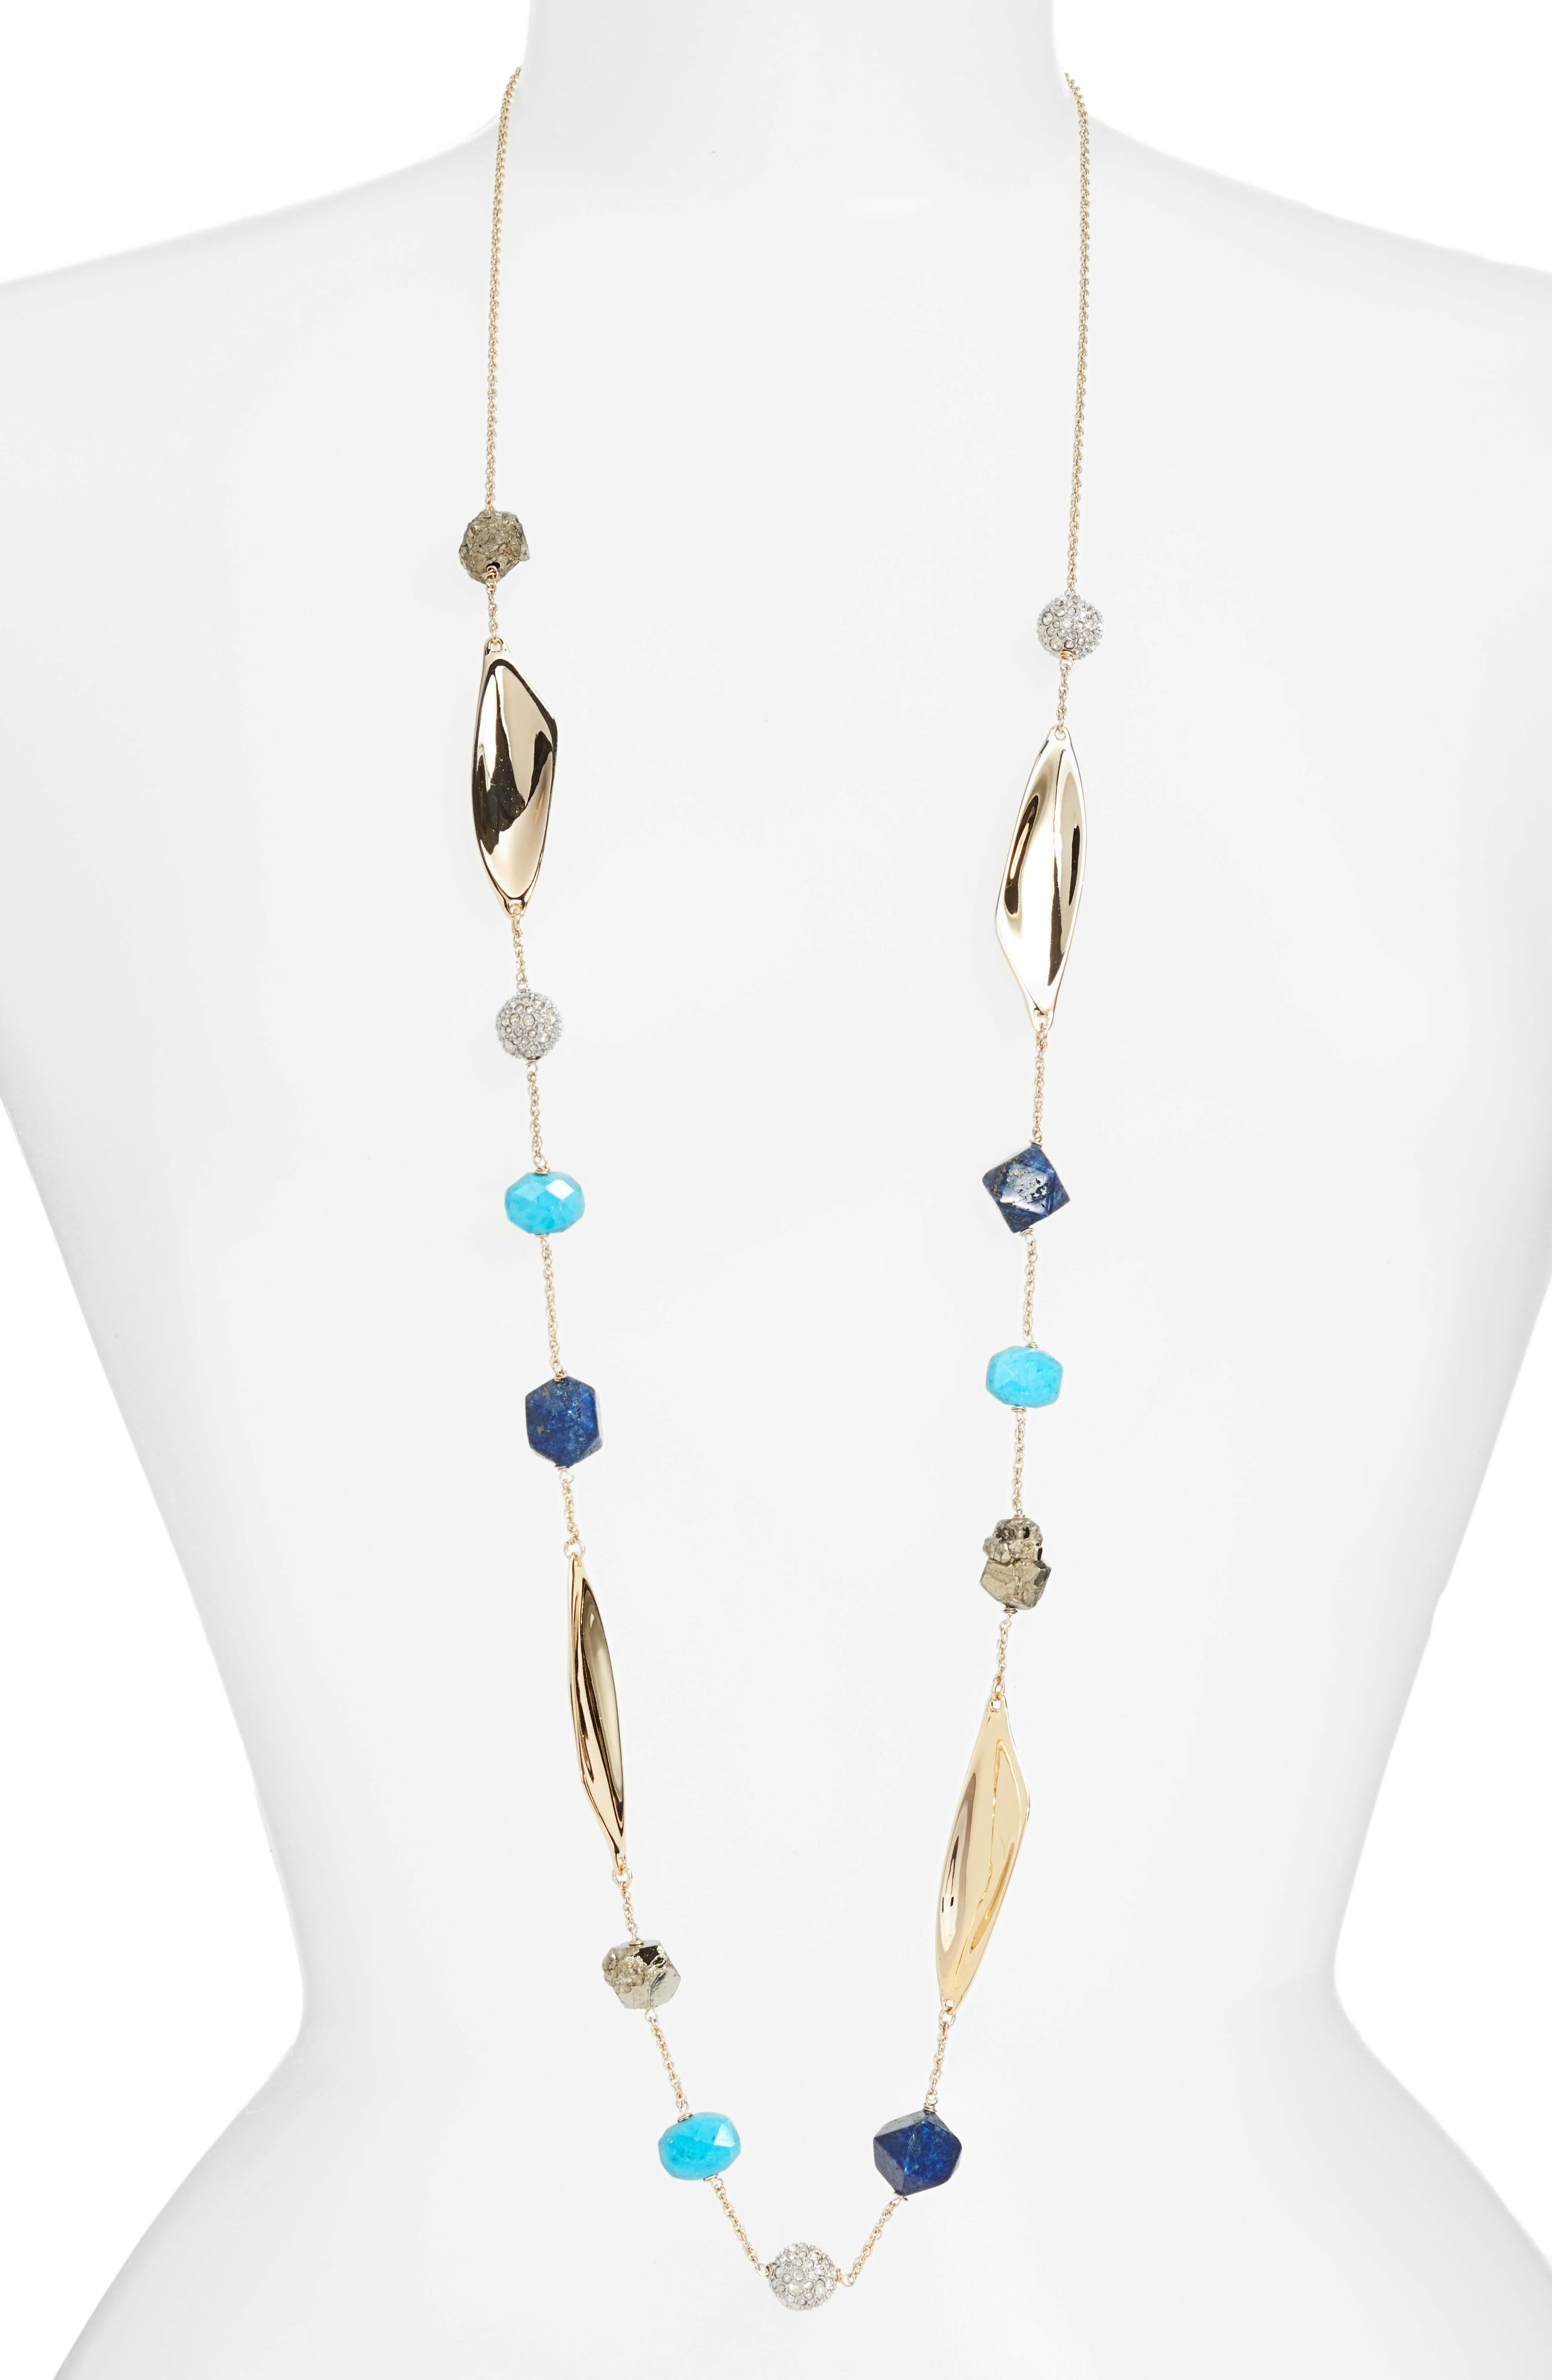 Main Image - Alexis Bittar Long Beaded Necklace